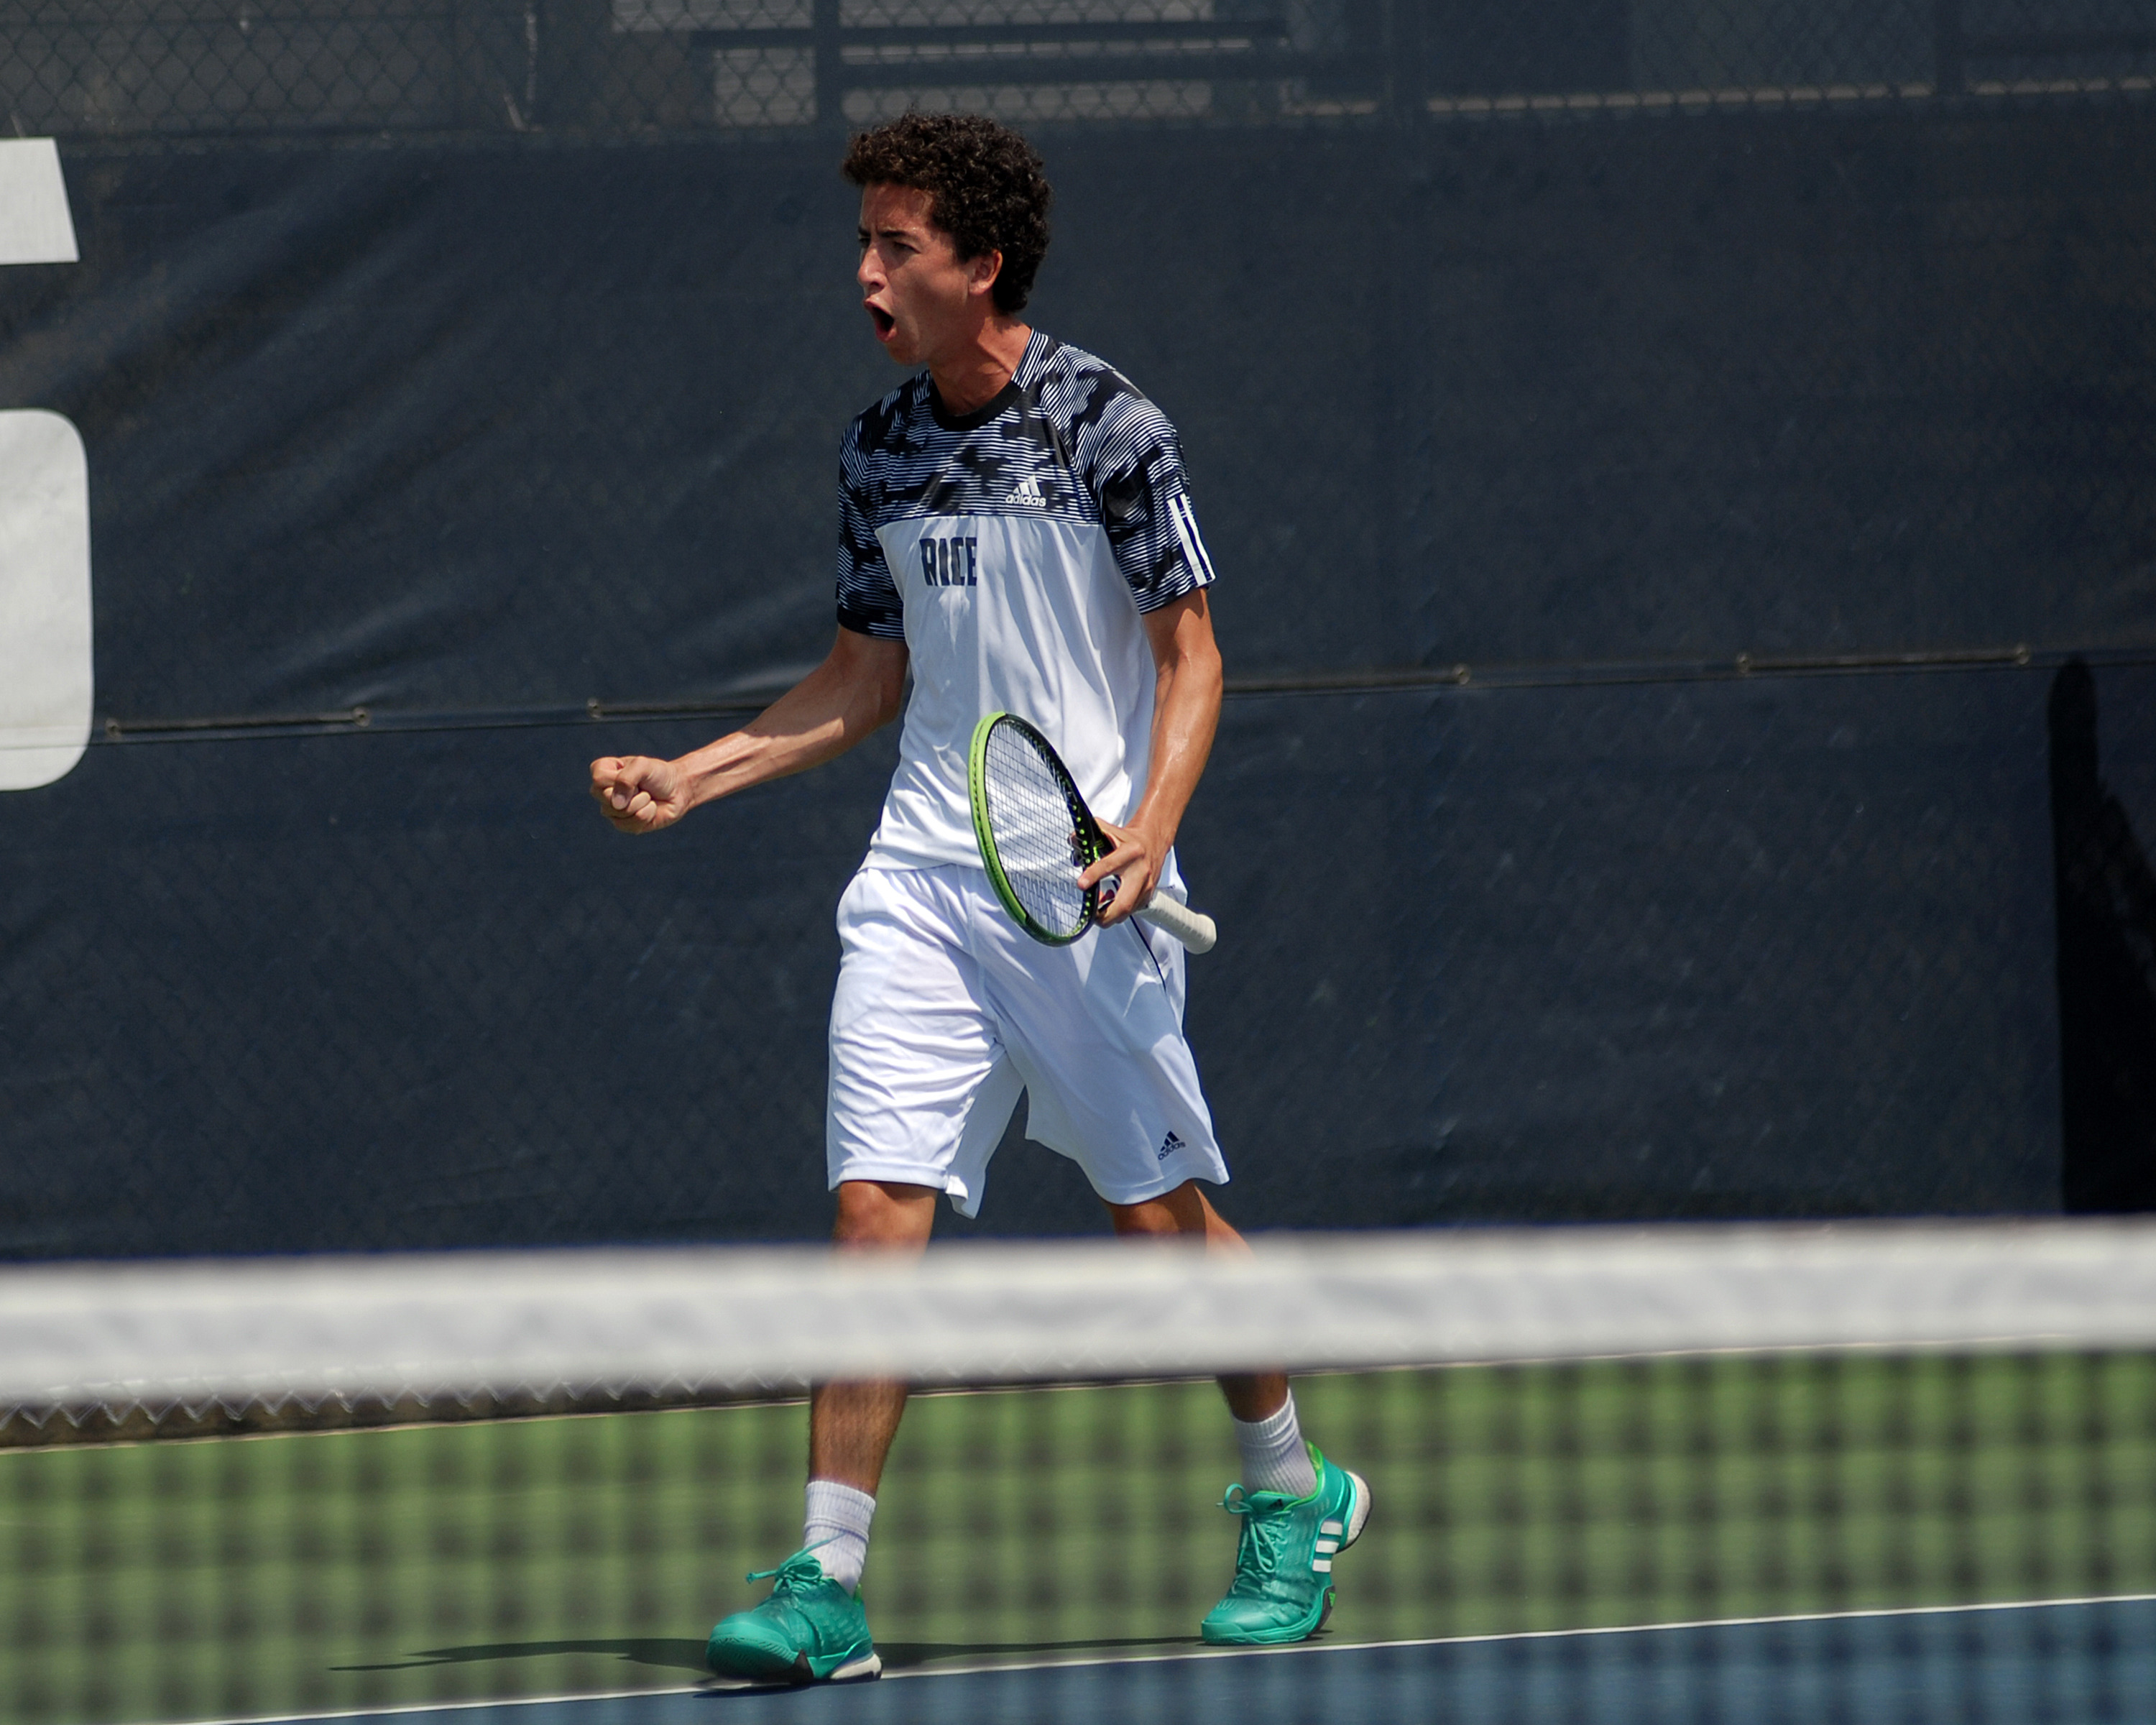 Emanuel Llamas closed out an unbeaten weekend with a singles win to push the lead to 3-1.